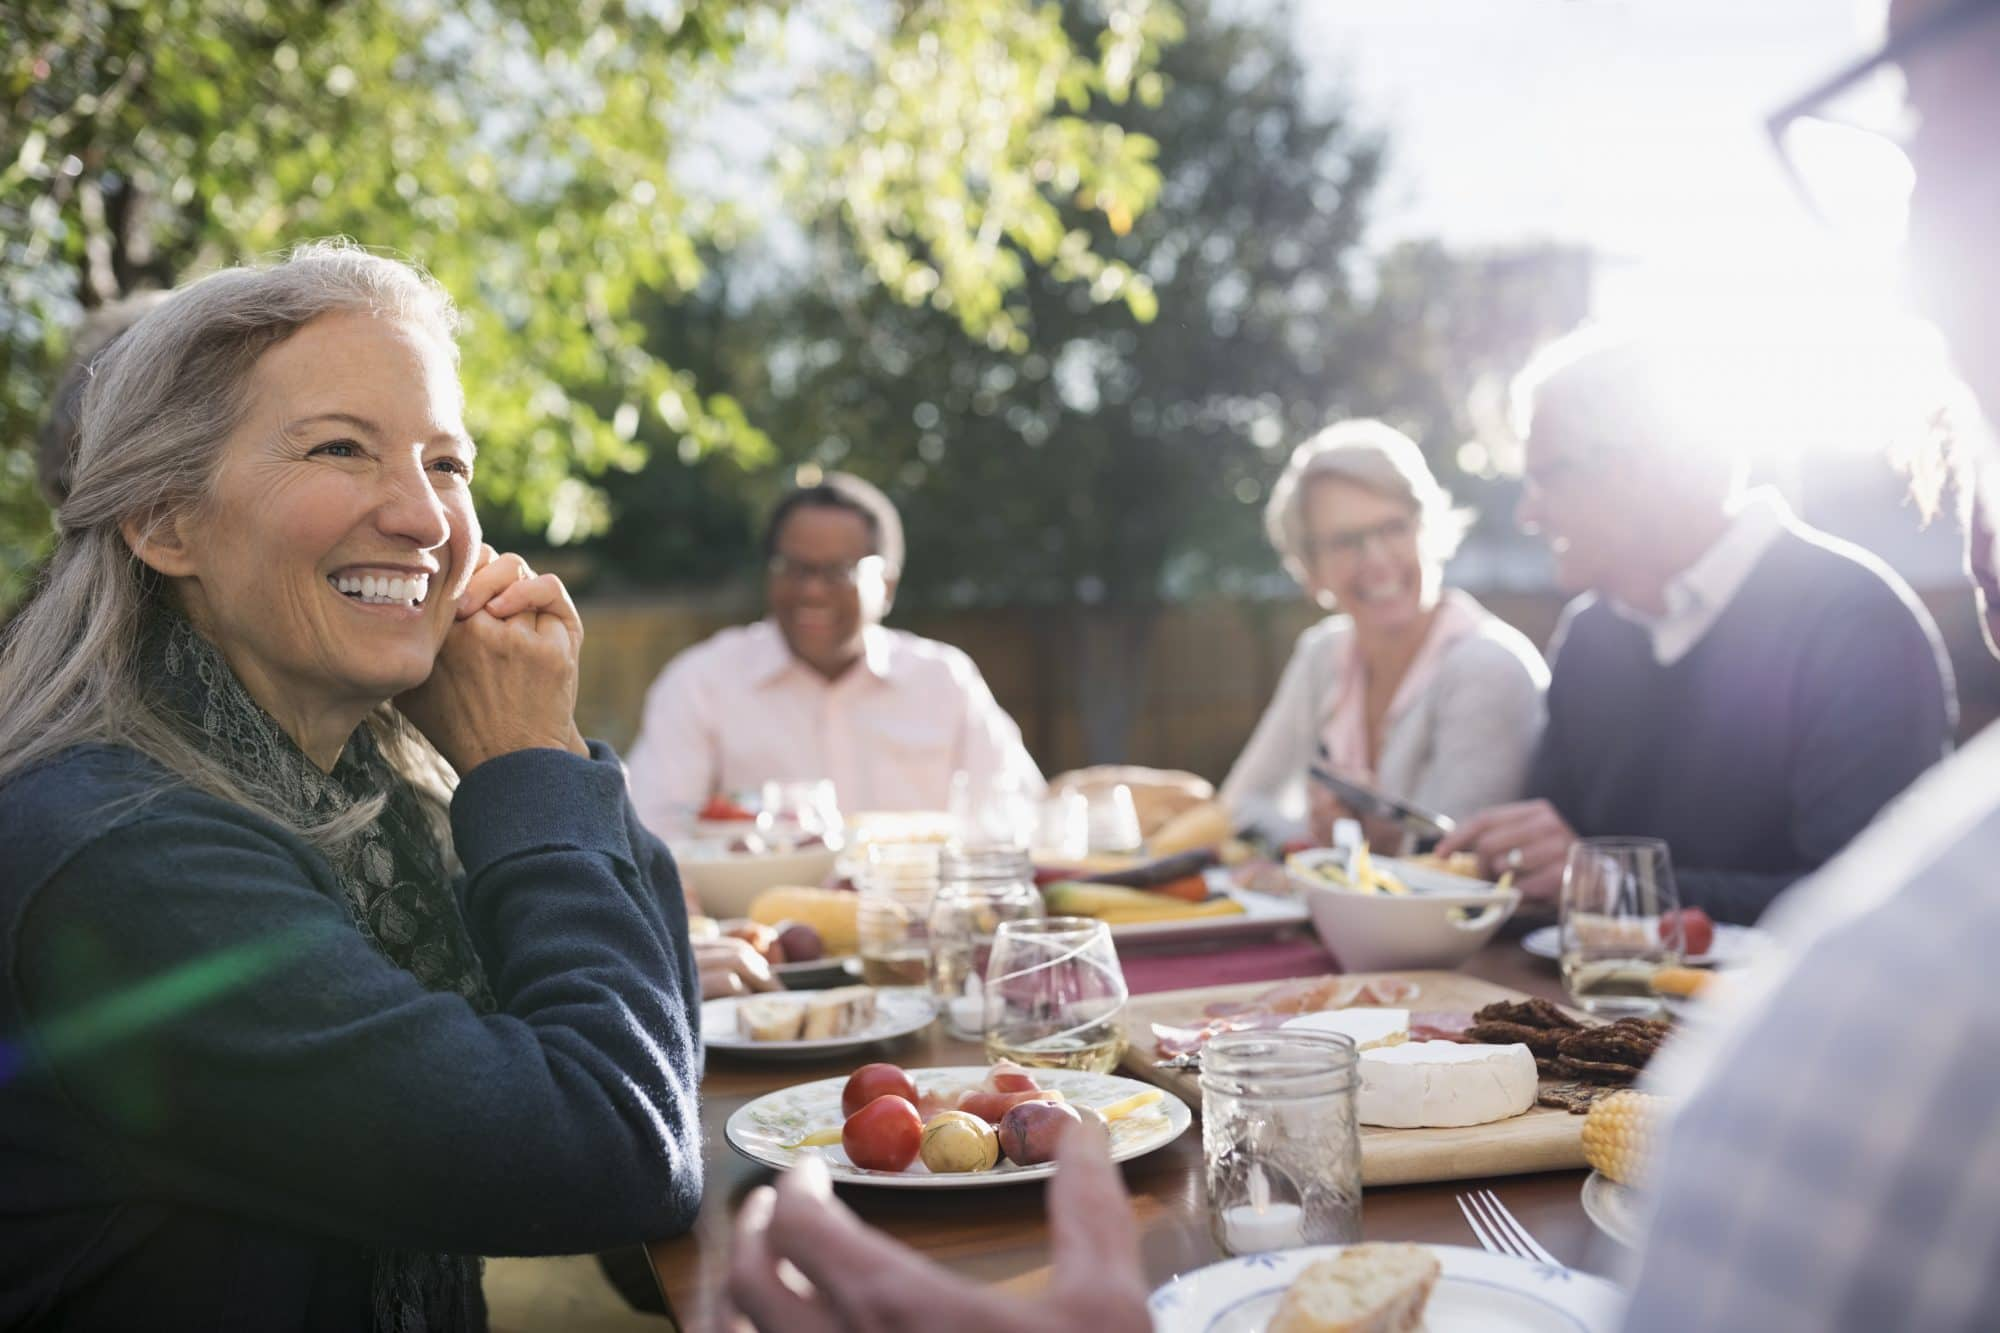 older people sitting around a table outside eating food and having a good time